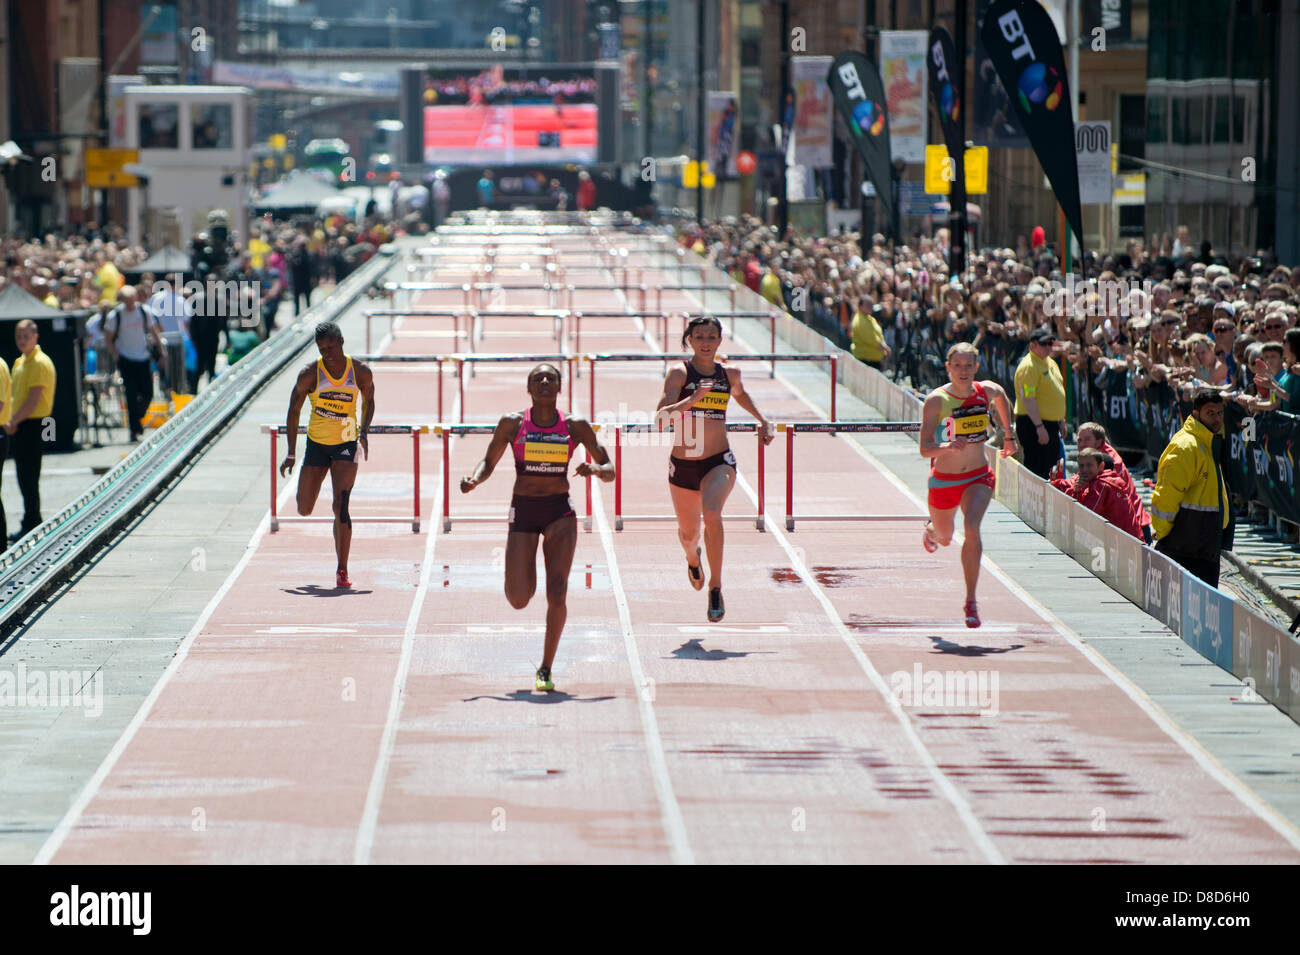 MANCHESTER, UK. 25th May 2013. Perri Shakes-Drayton of Great Britain sprints to take 1st place in the Womens 200m - Stock Image